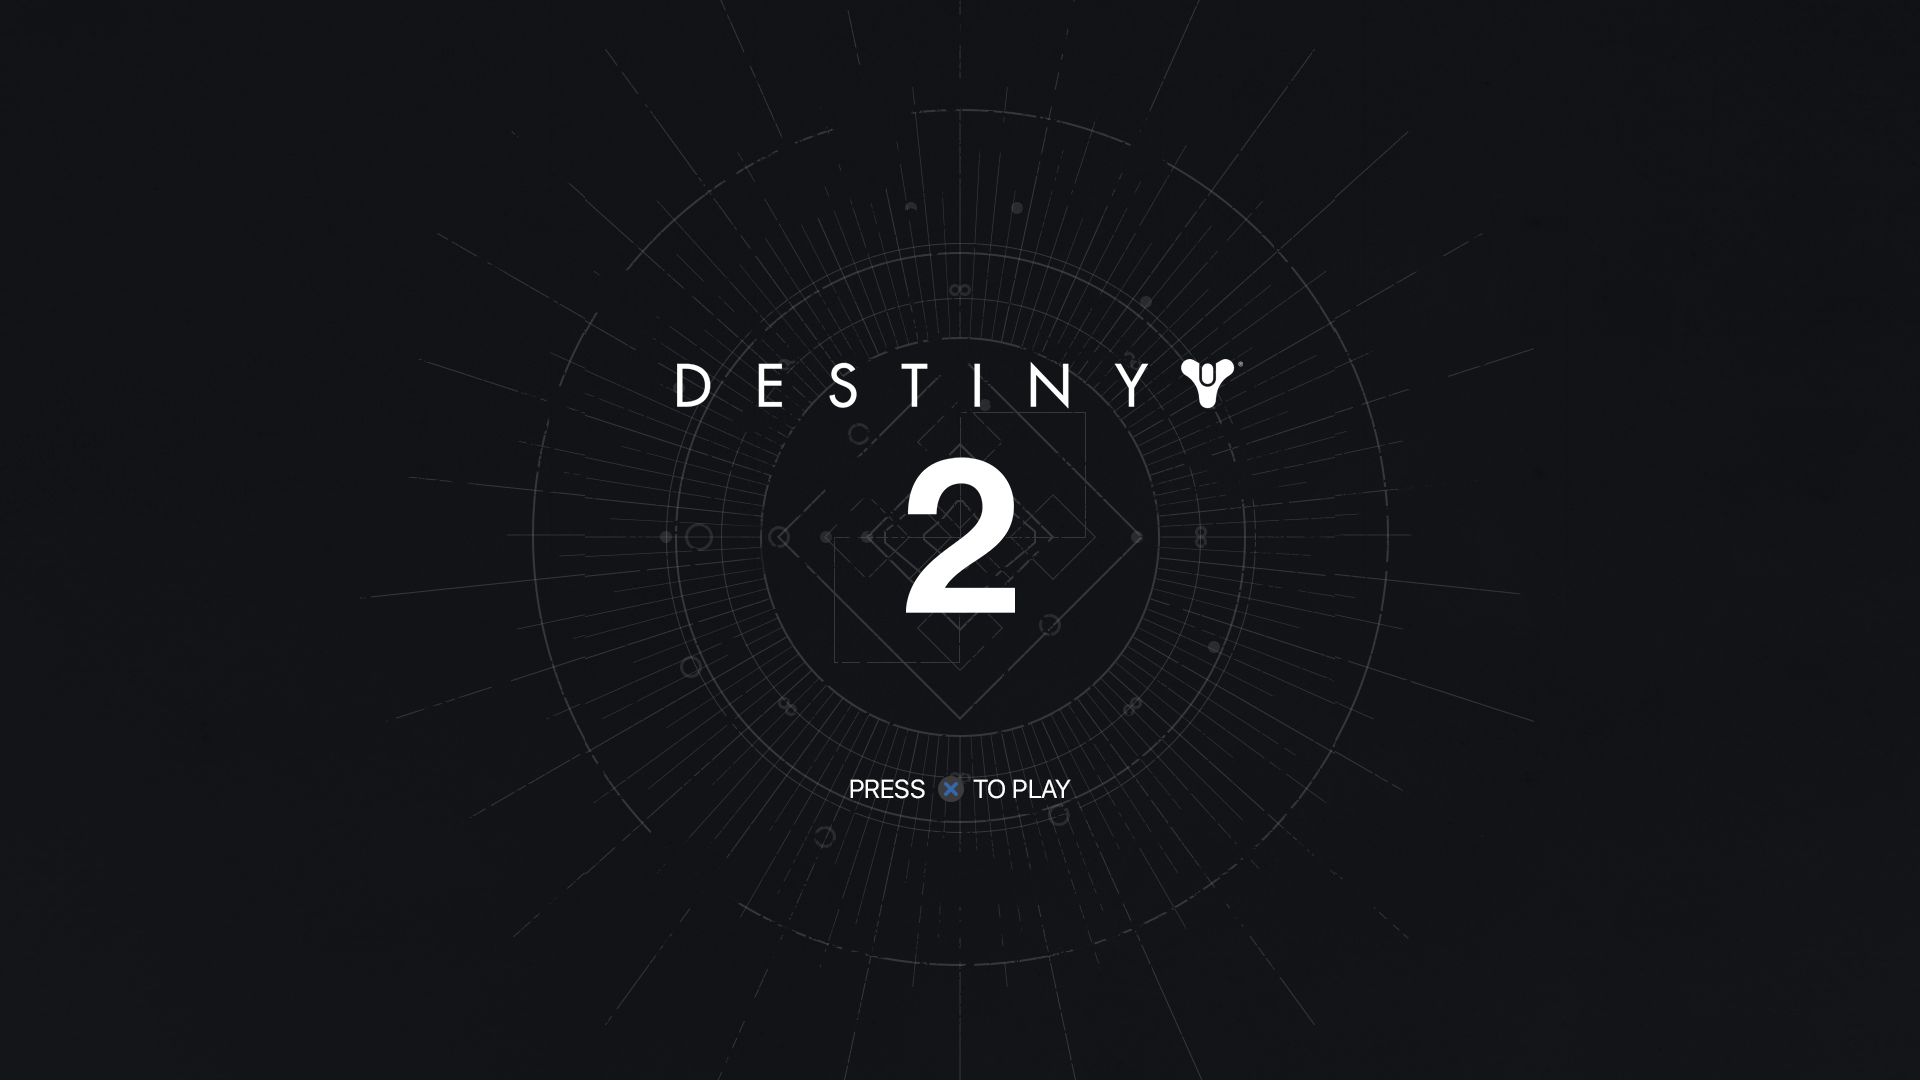 destiny 2 home screen wallpaper 61912